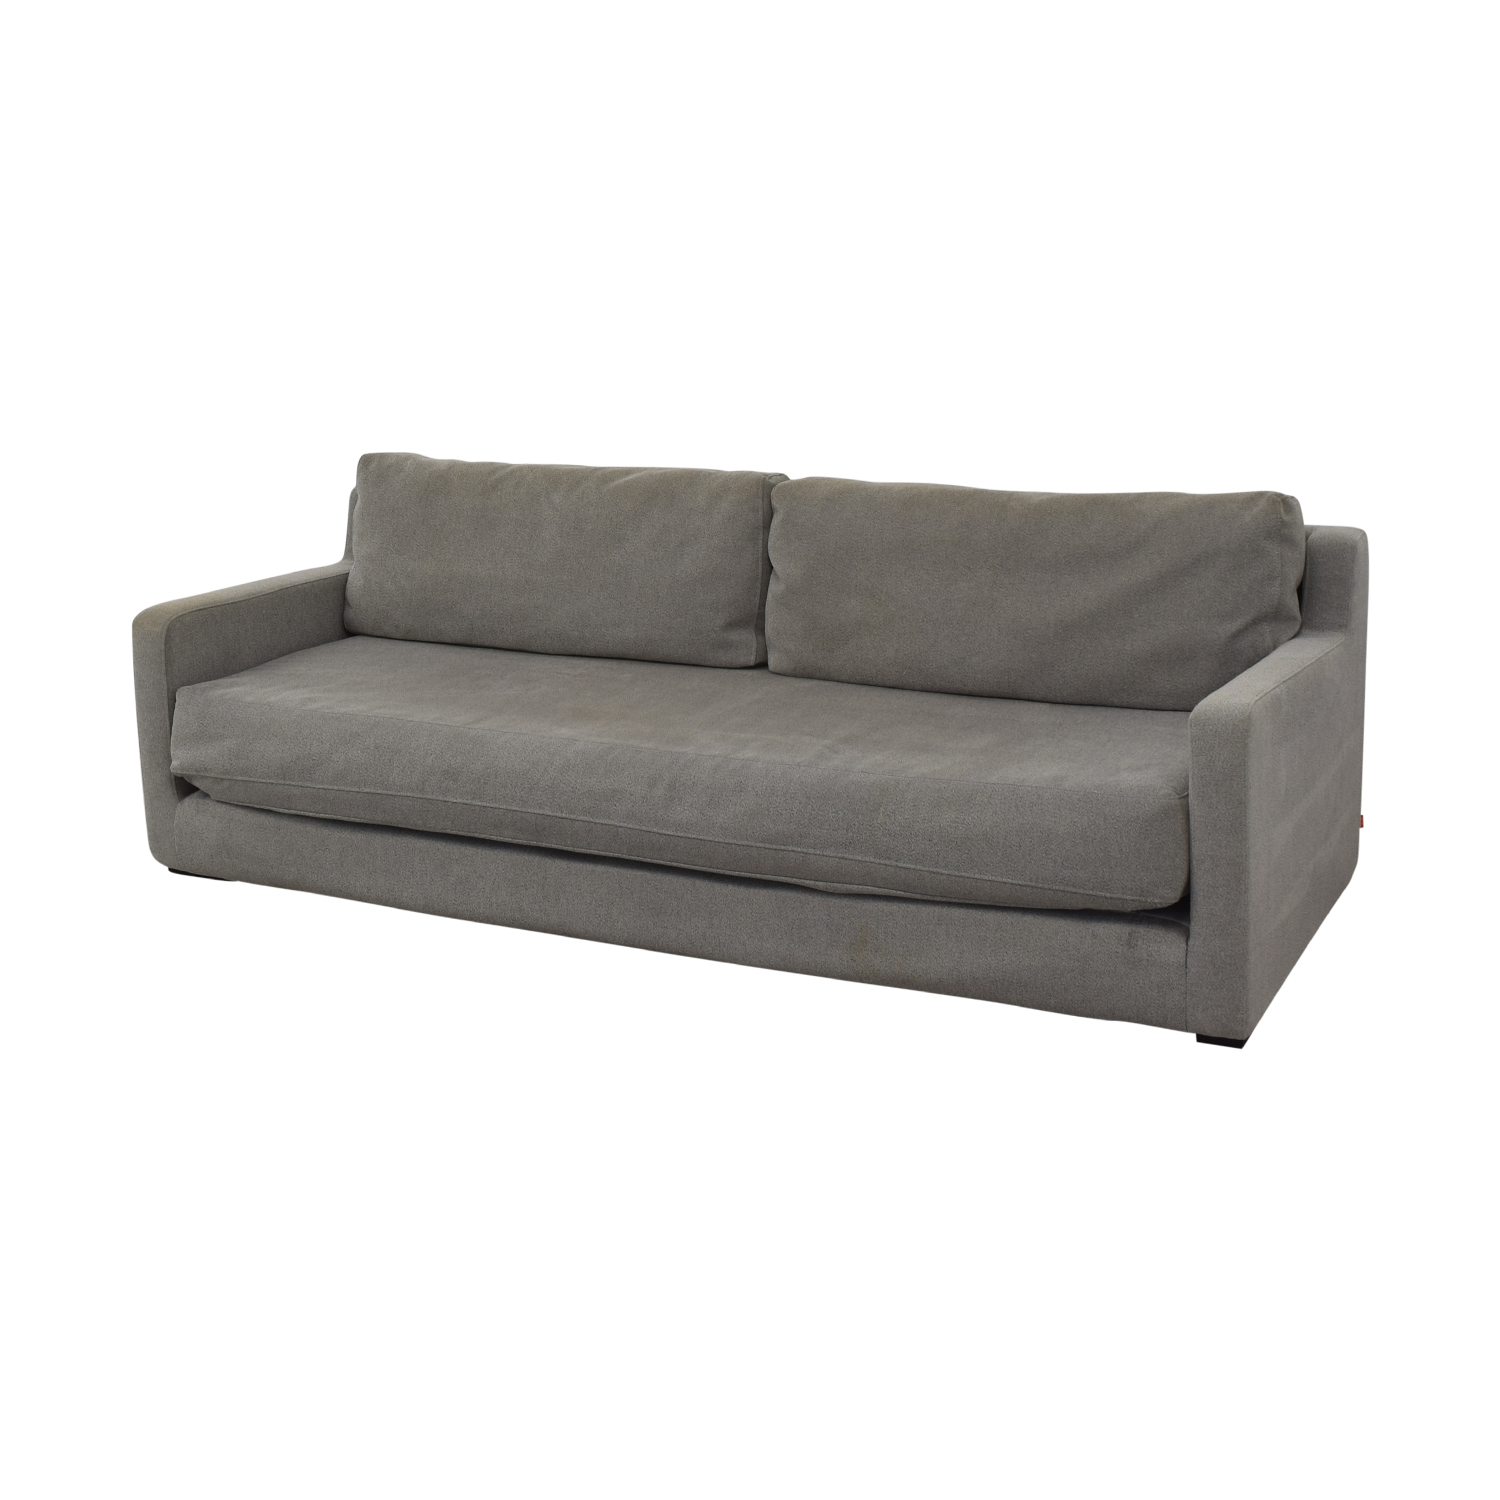 Gus Modern Fabric Sleeper Sofa sale